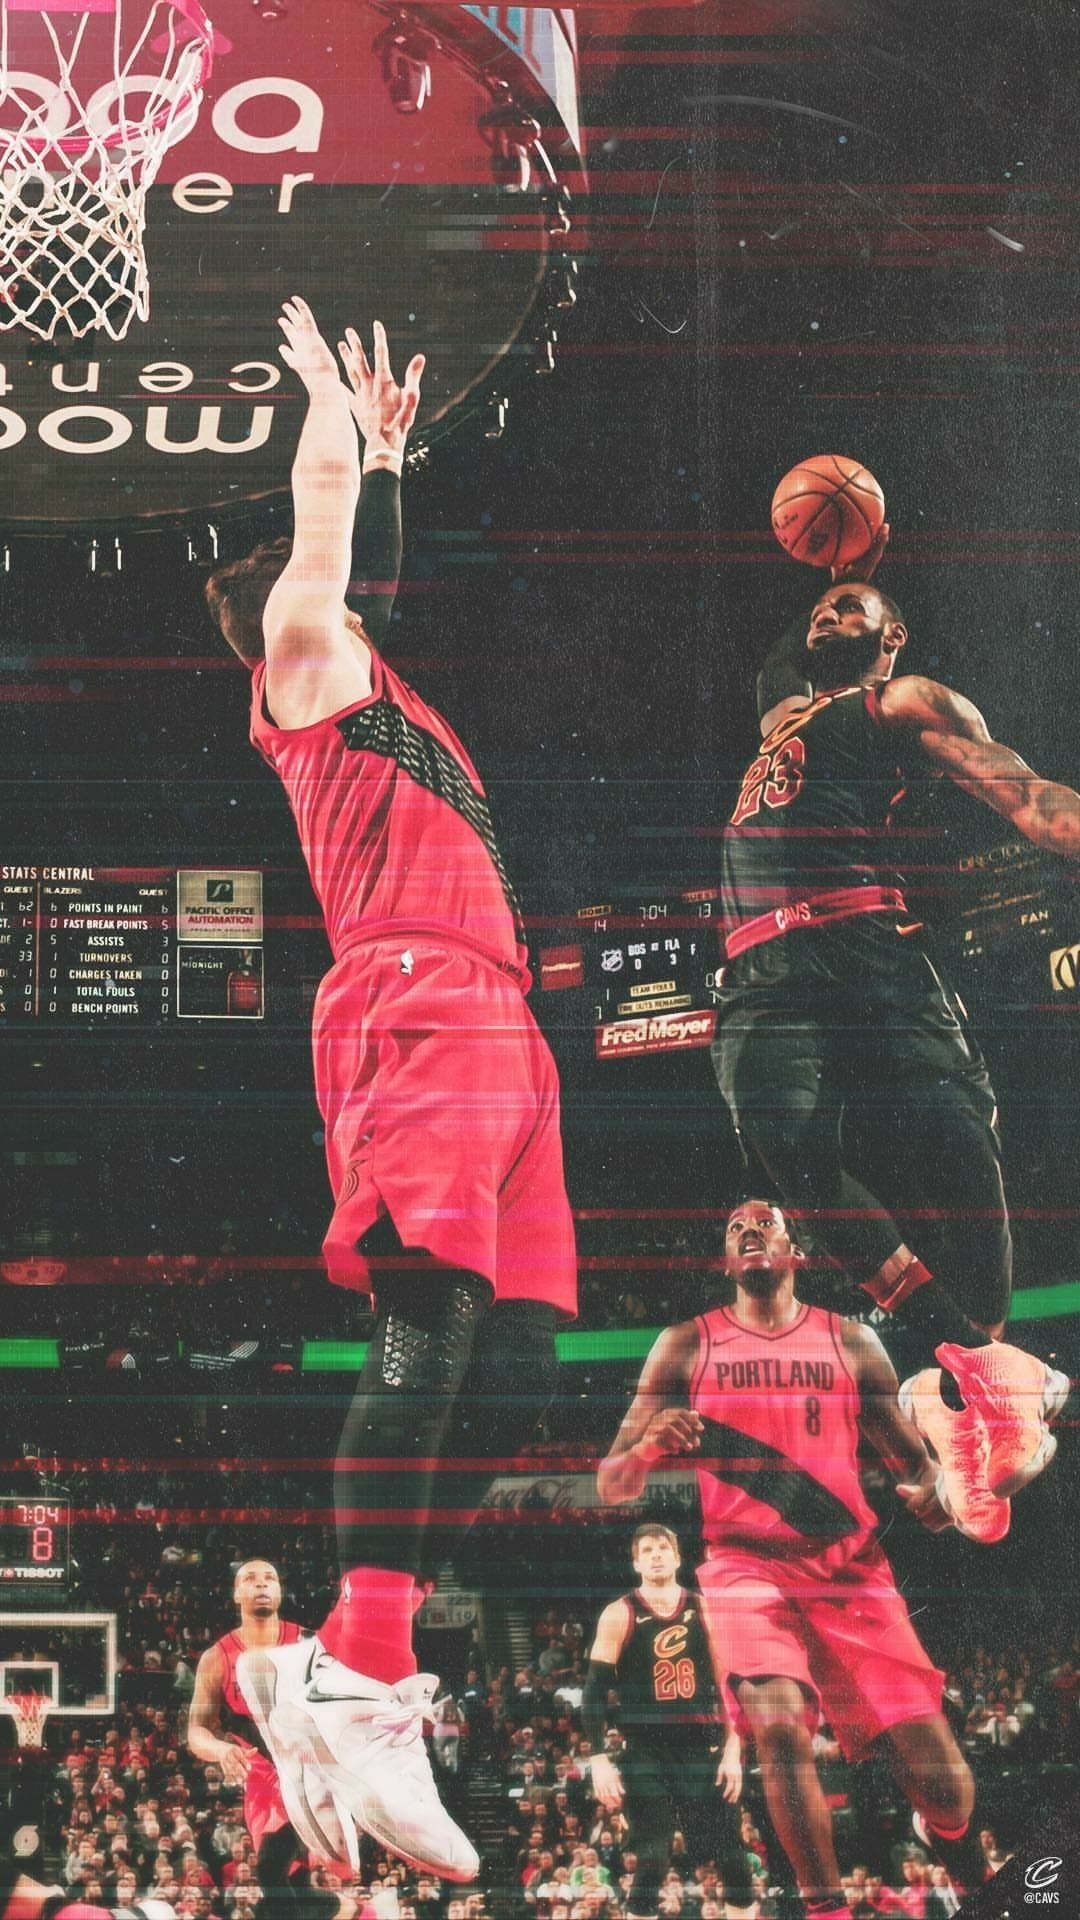 Lebron James Wallpaper Jugadores De La Nba Nba Y Deportes